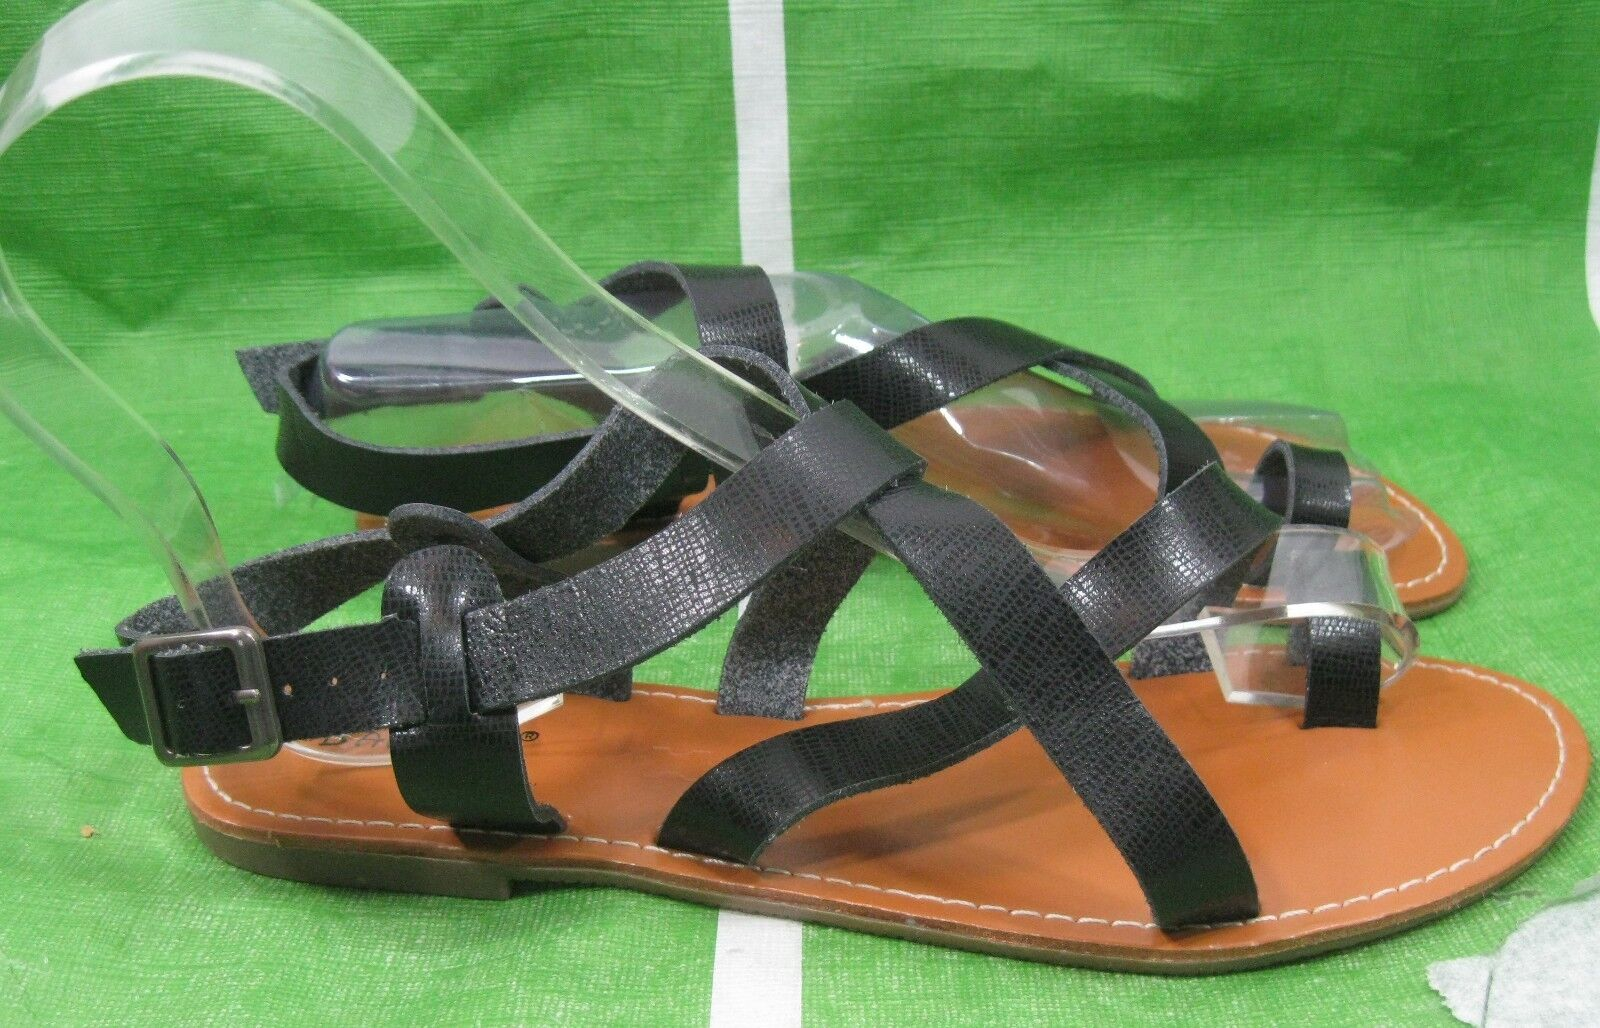 Summer Black Womens Shoes Ankle Strap Sexy 7 Flat Sandals Shoes Size 7 Sexy ac45a3